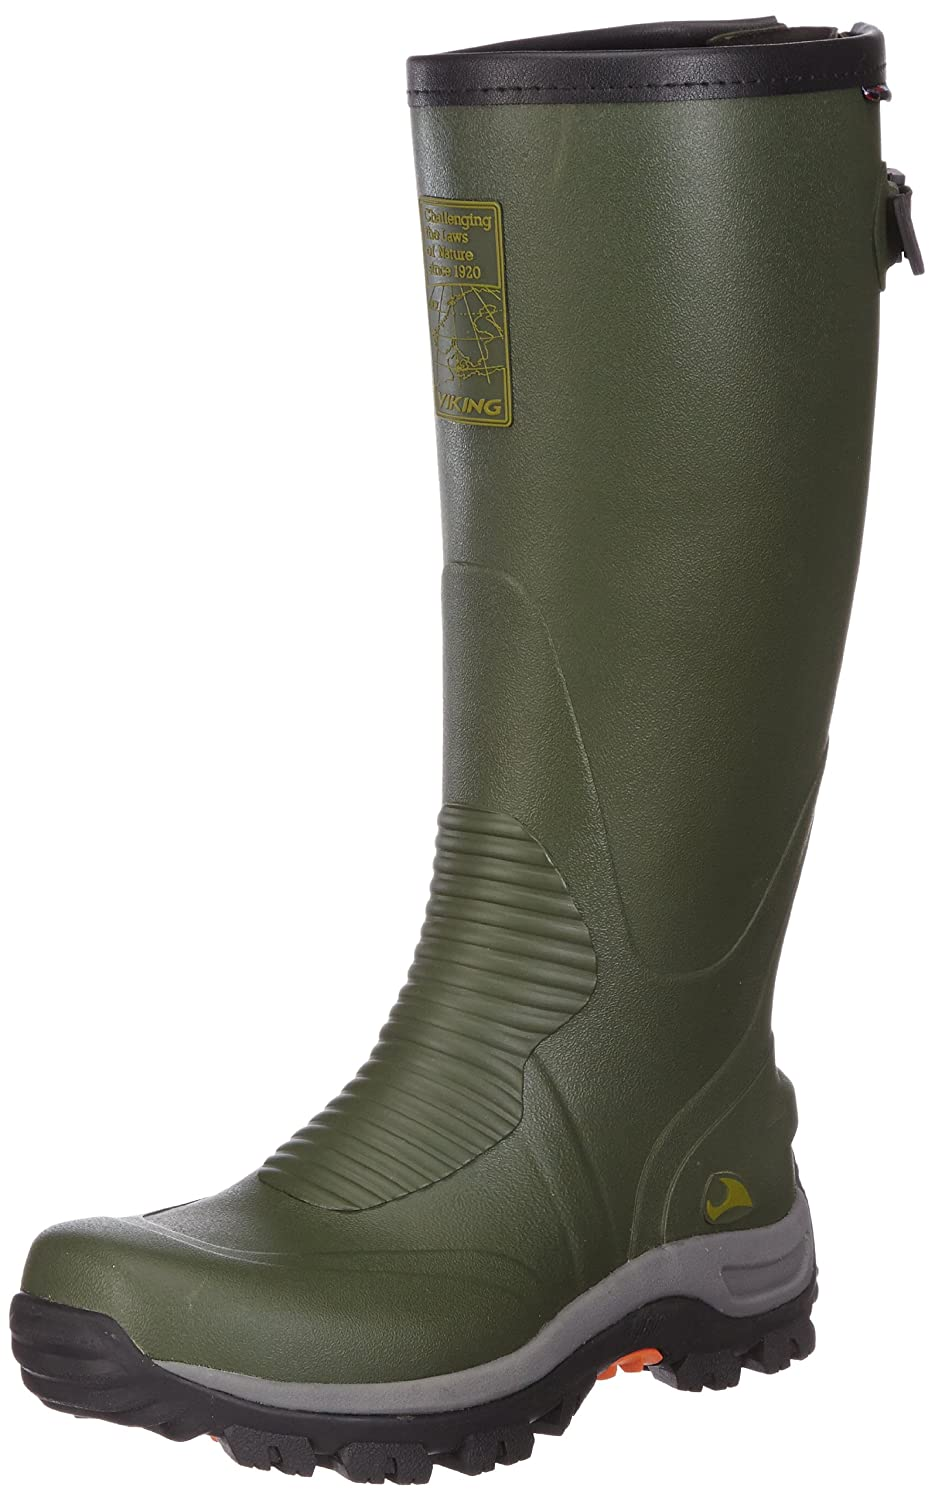 Unisex - Adult Elk Hunter Schlupfstiefel Viking Buy Cheap For Cheap Discount From China Cheap Sale Fast Delivery 2018 New Cheap Price Outlet Eastbay VnErxZXpgv